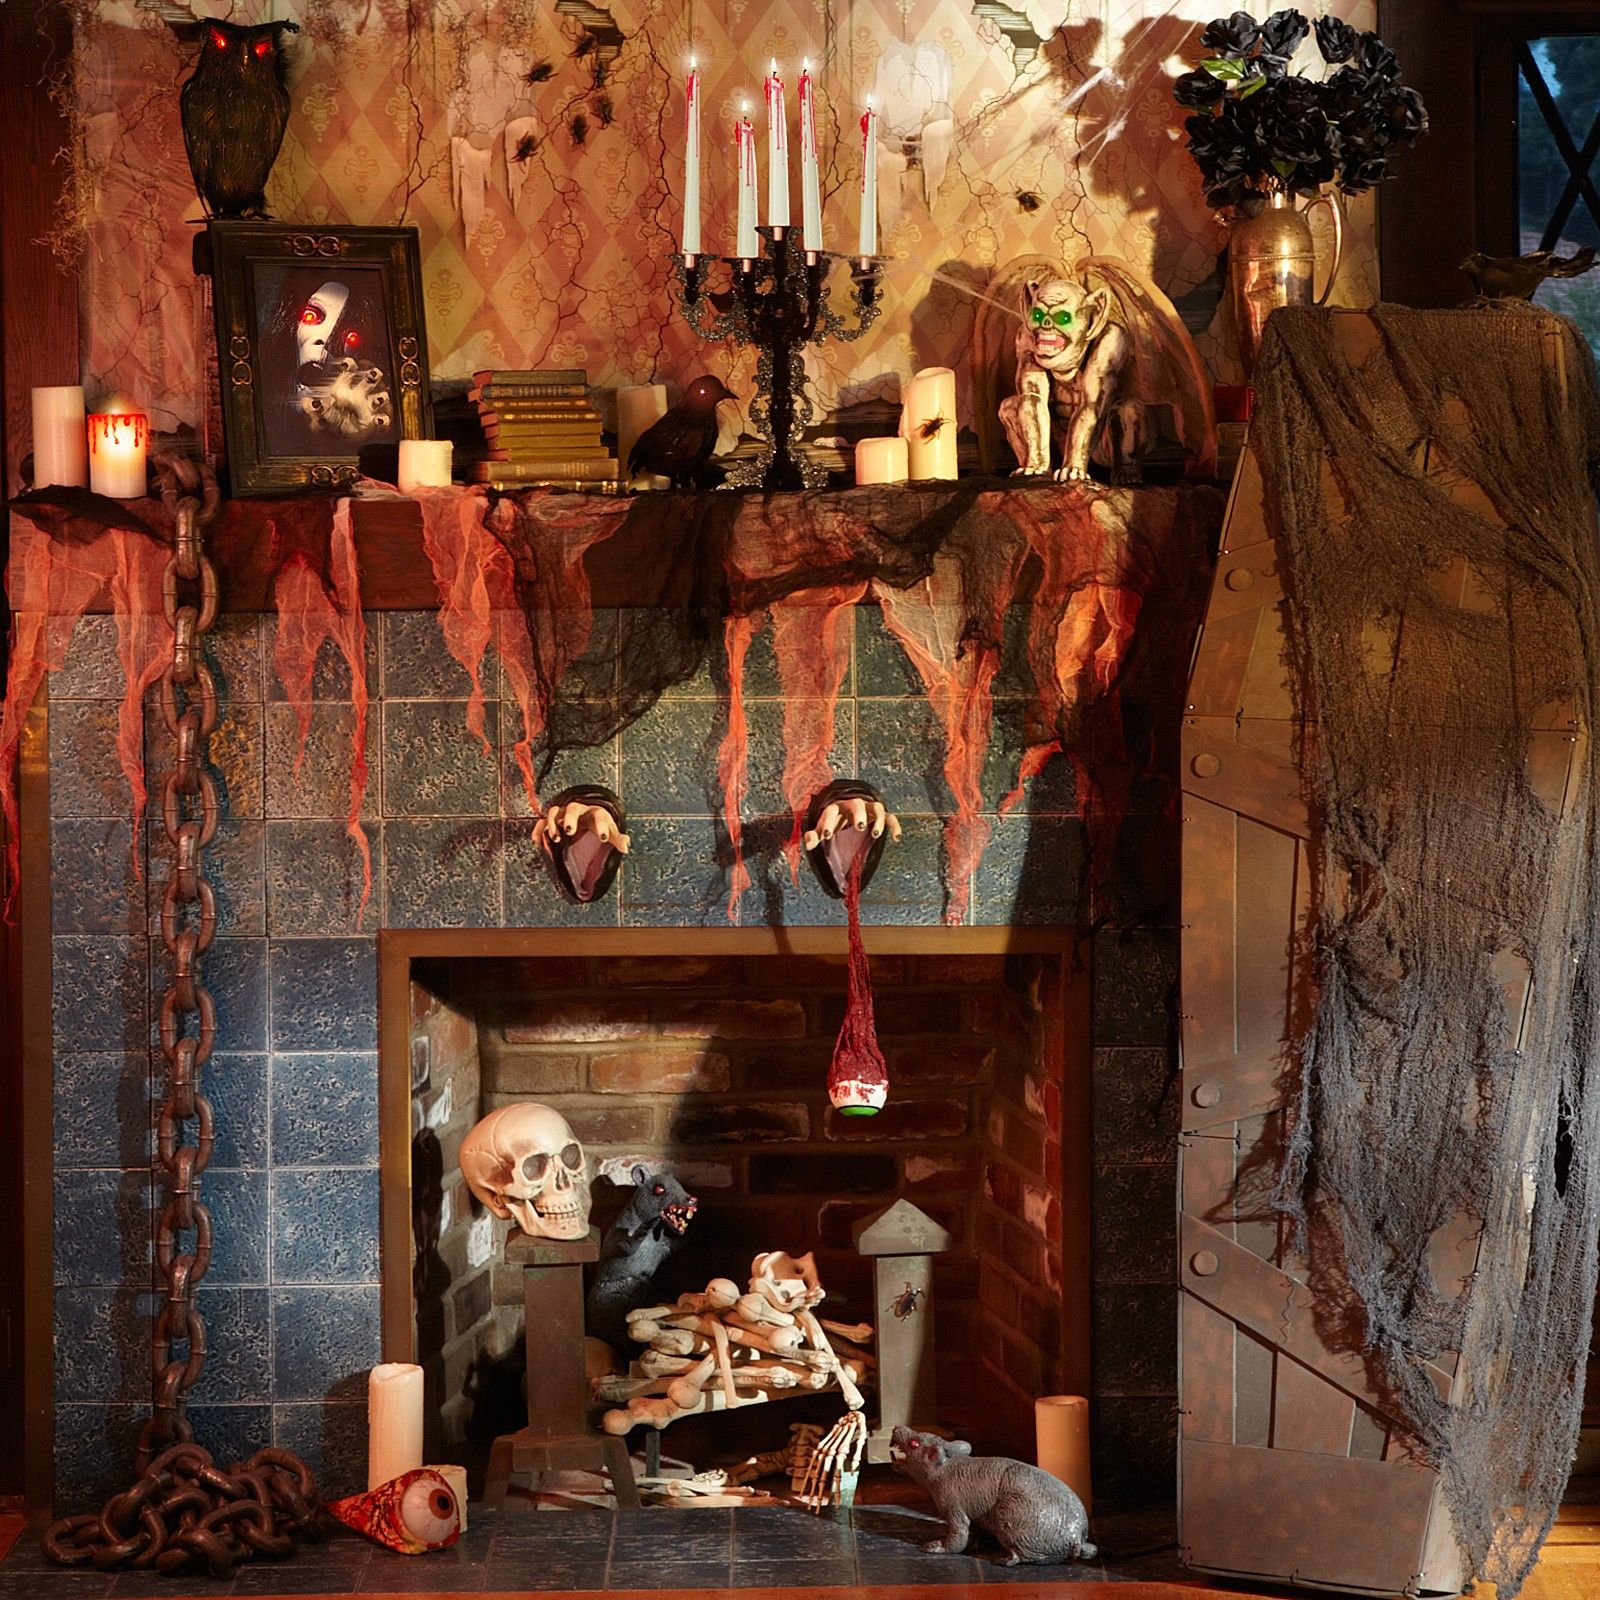 Halloween Home Decor Ideas: Coffin Prop, Piles Of Bones, Chains